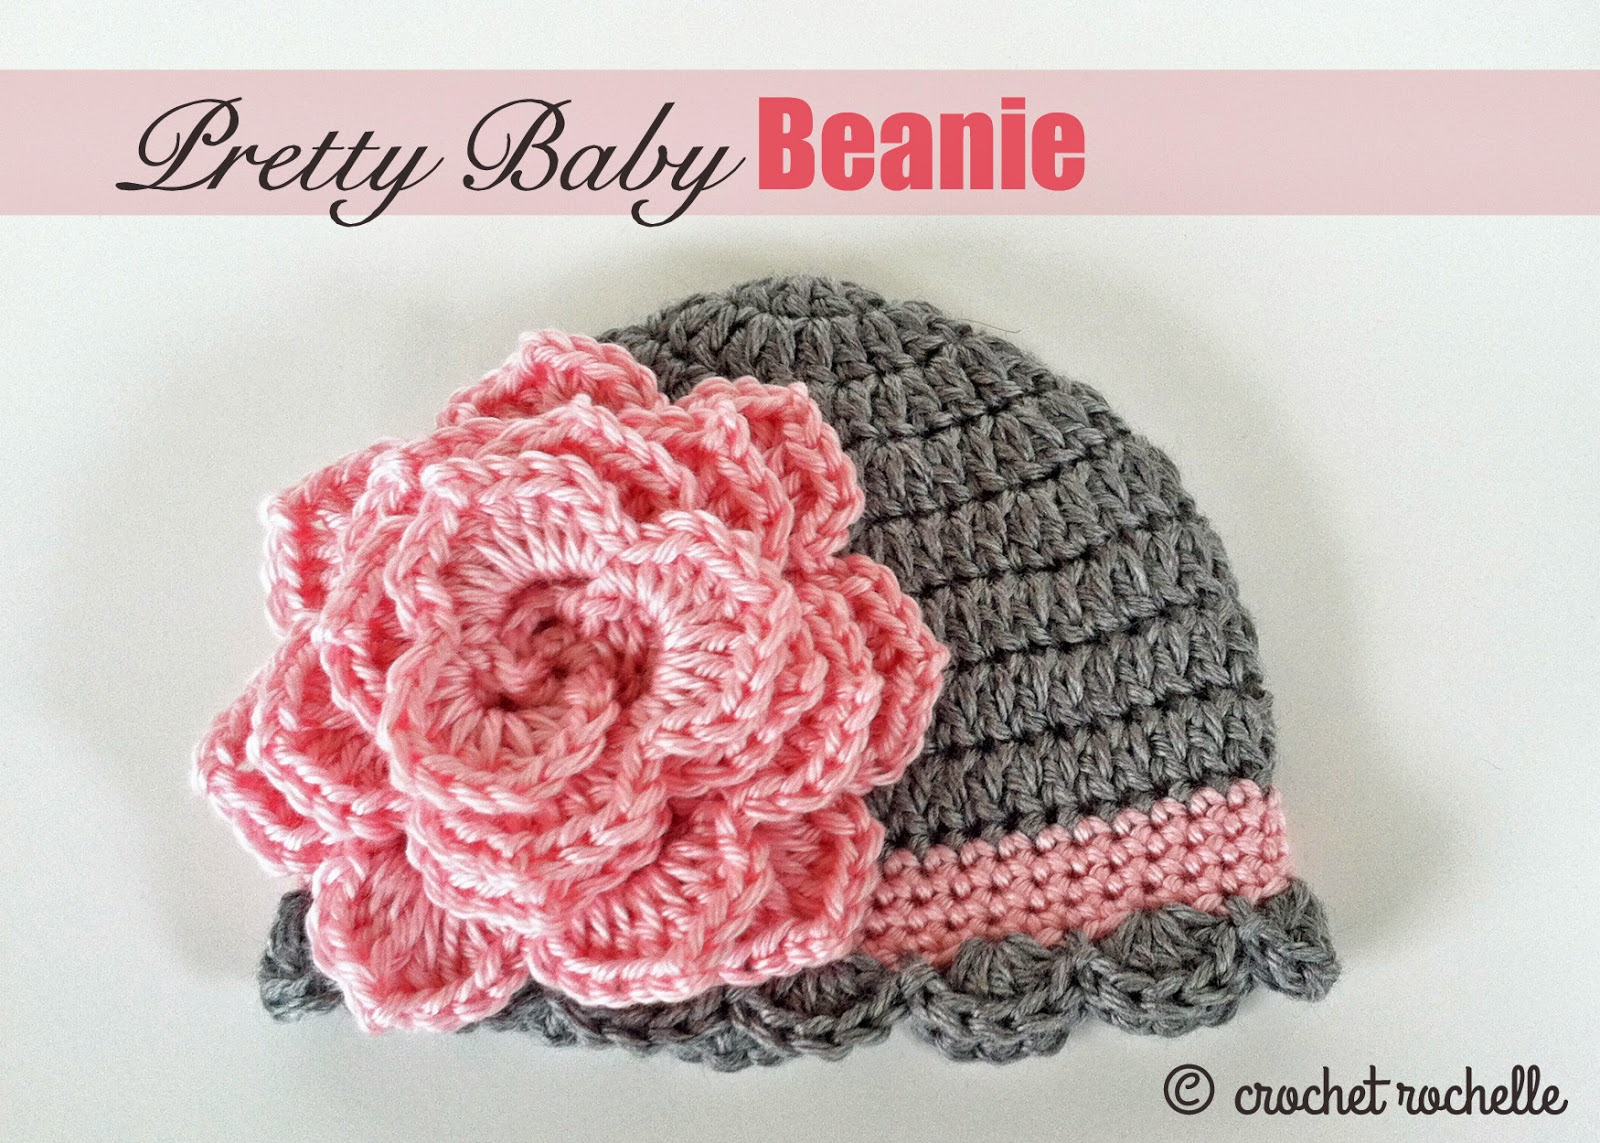 Free Crochet Patterns For Baby Girl Beanie : Crochet Rochelle: Pretty Baby Beanie